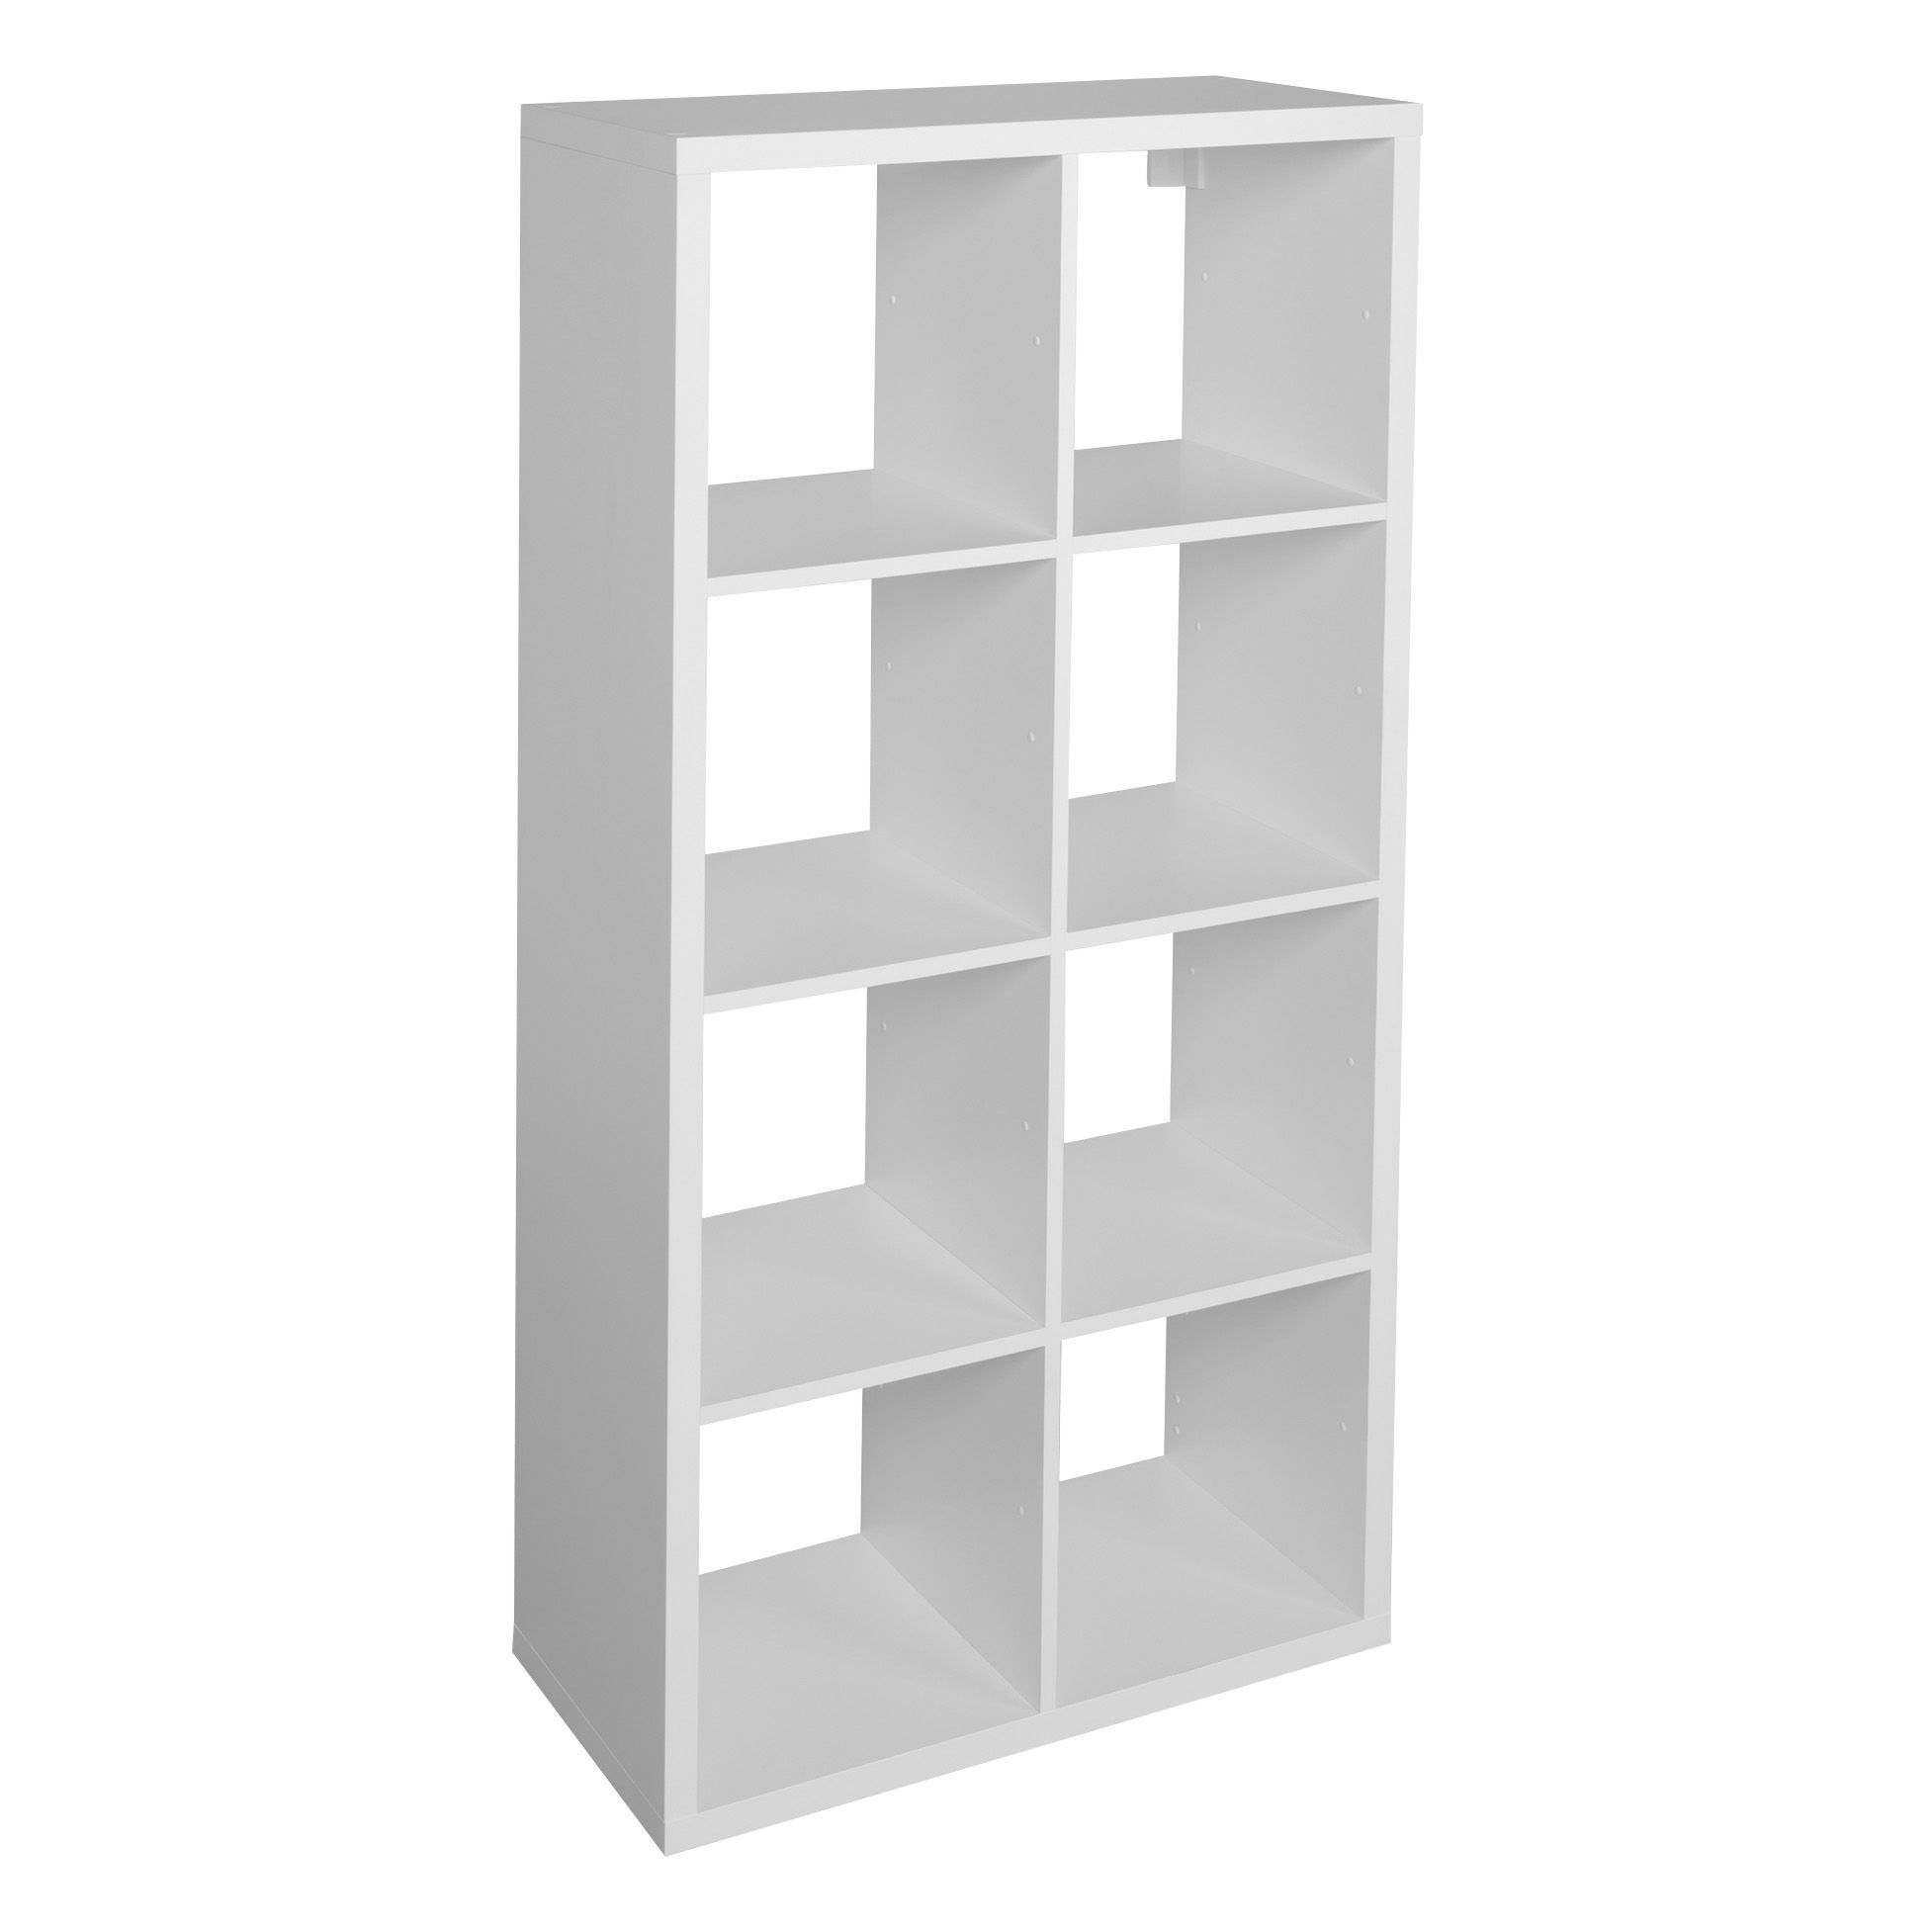 Form Mixxit White 8 Cube Shelving Unit H 1420mm W 740mm Rooms